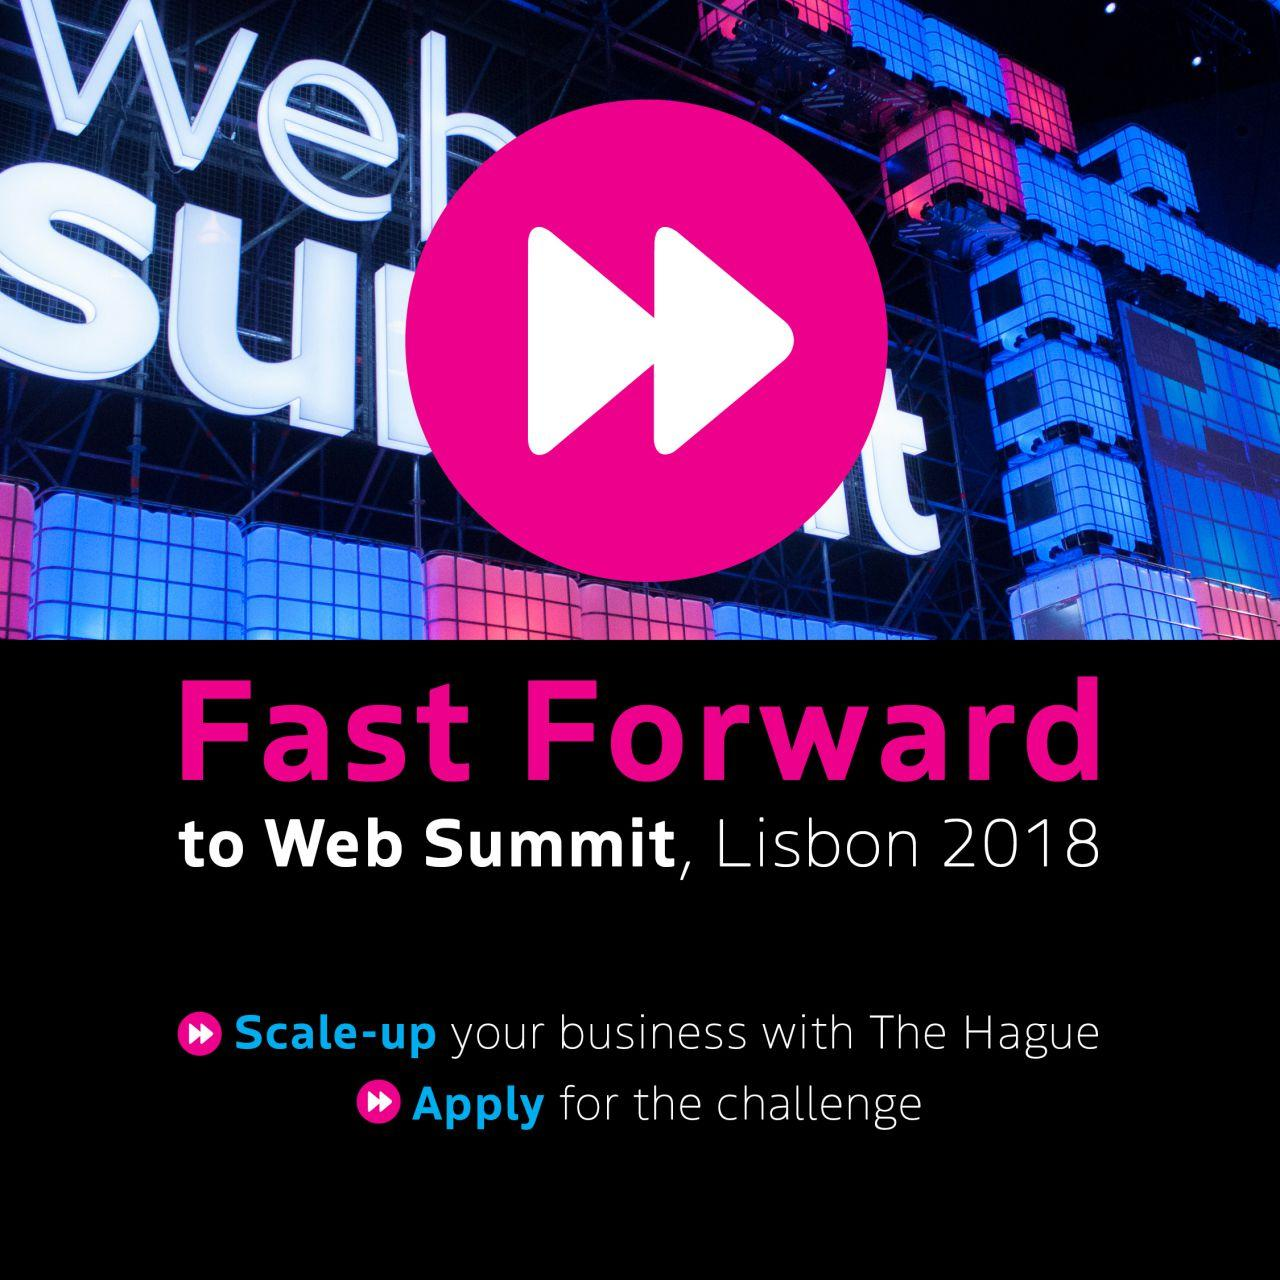 Call for Participation: Startups and Scale-ups for the Fast Forward Challenge 2018